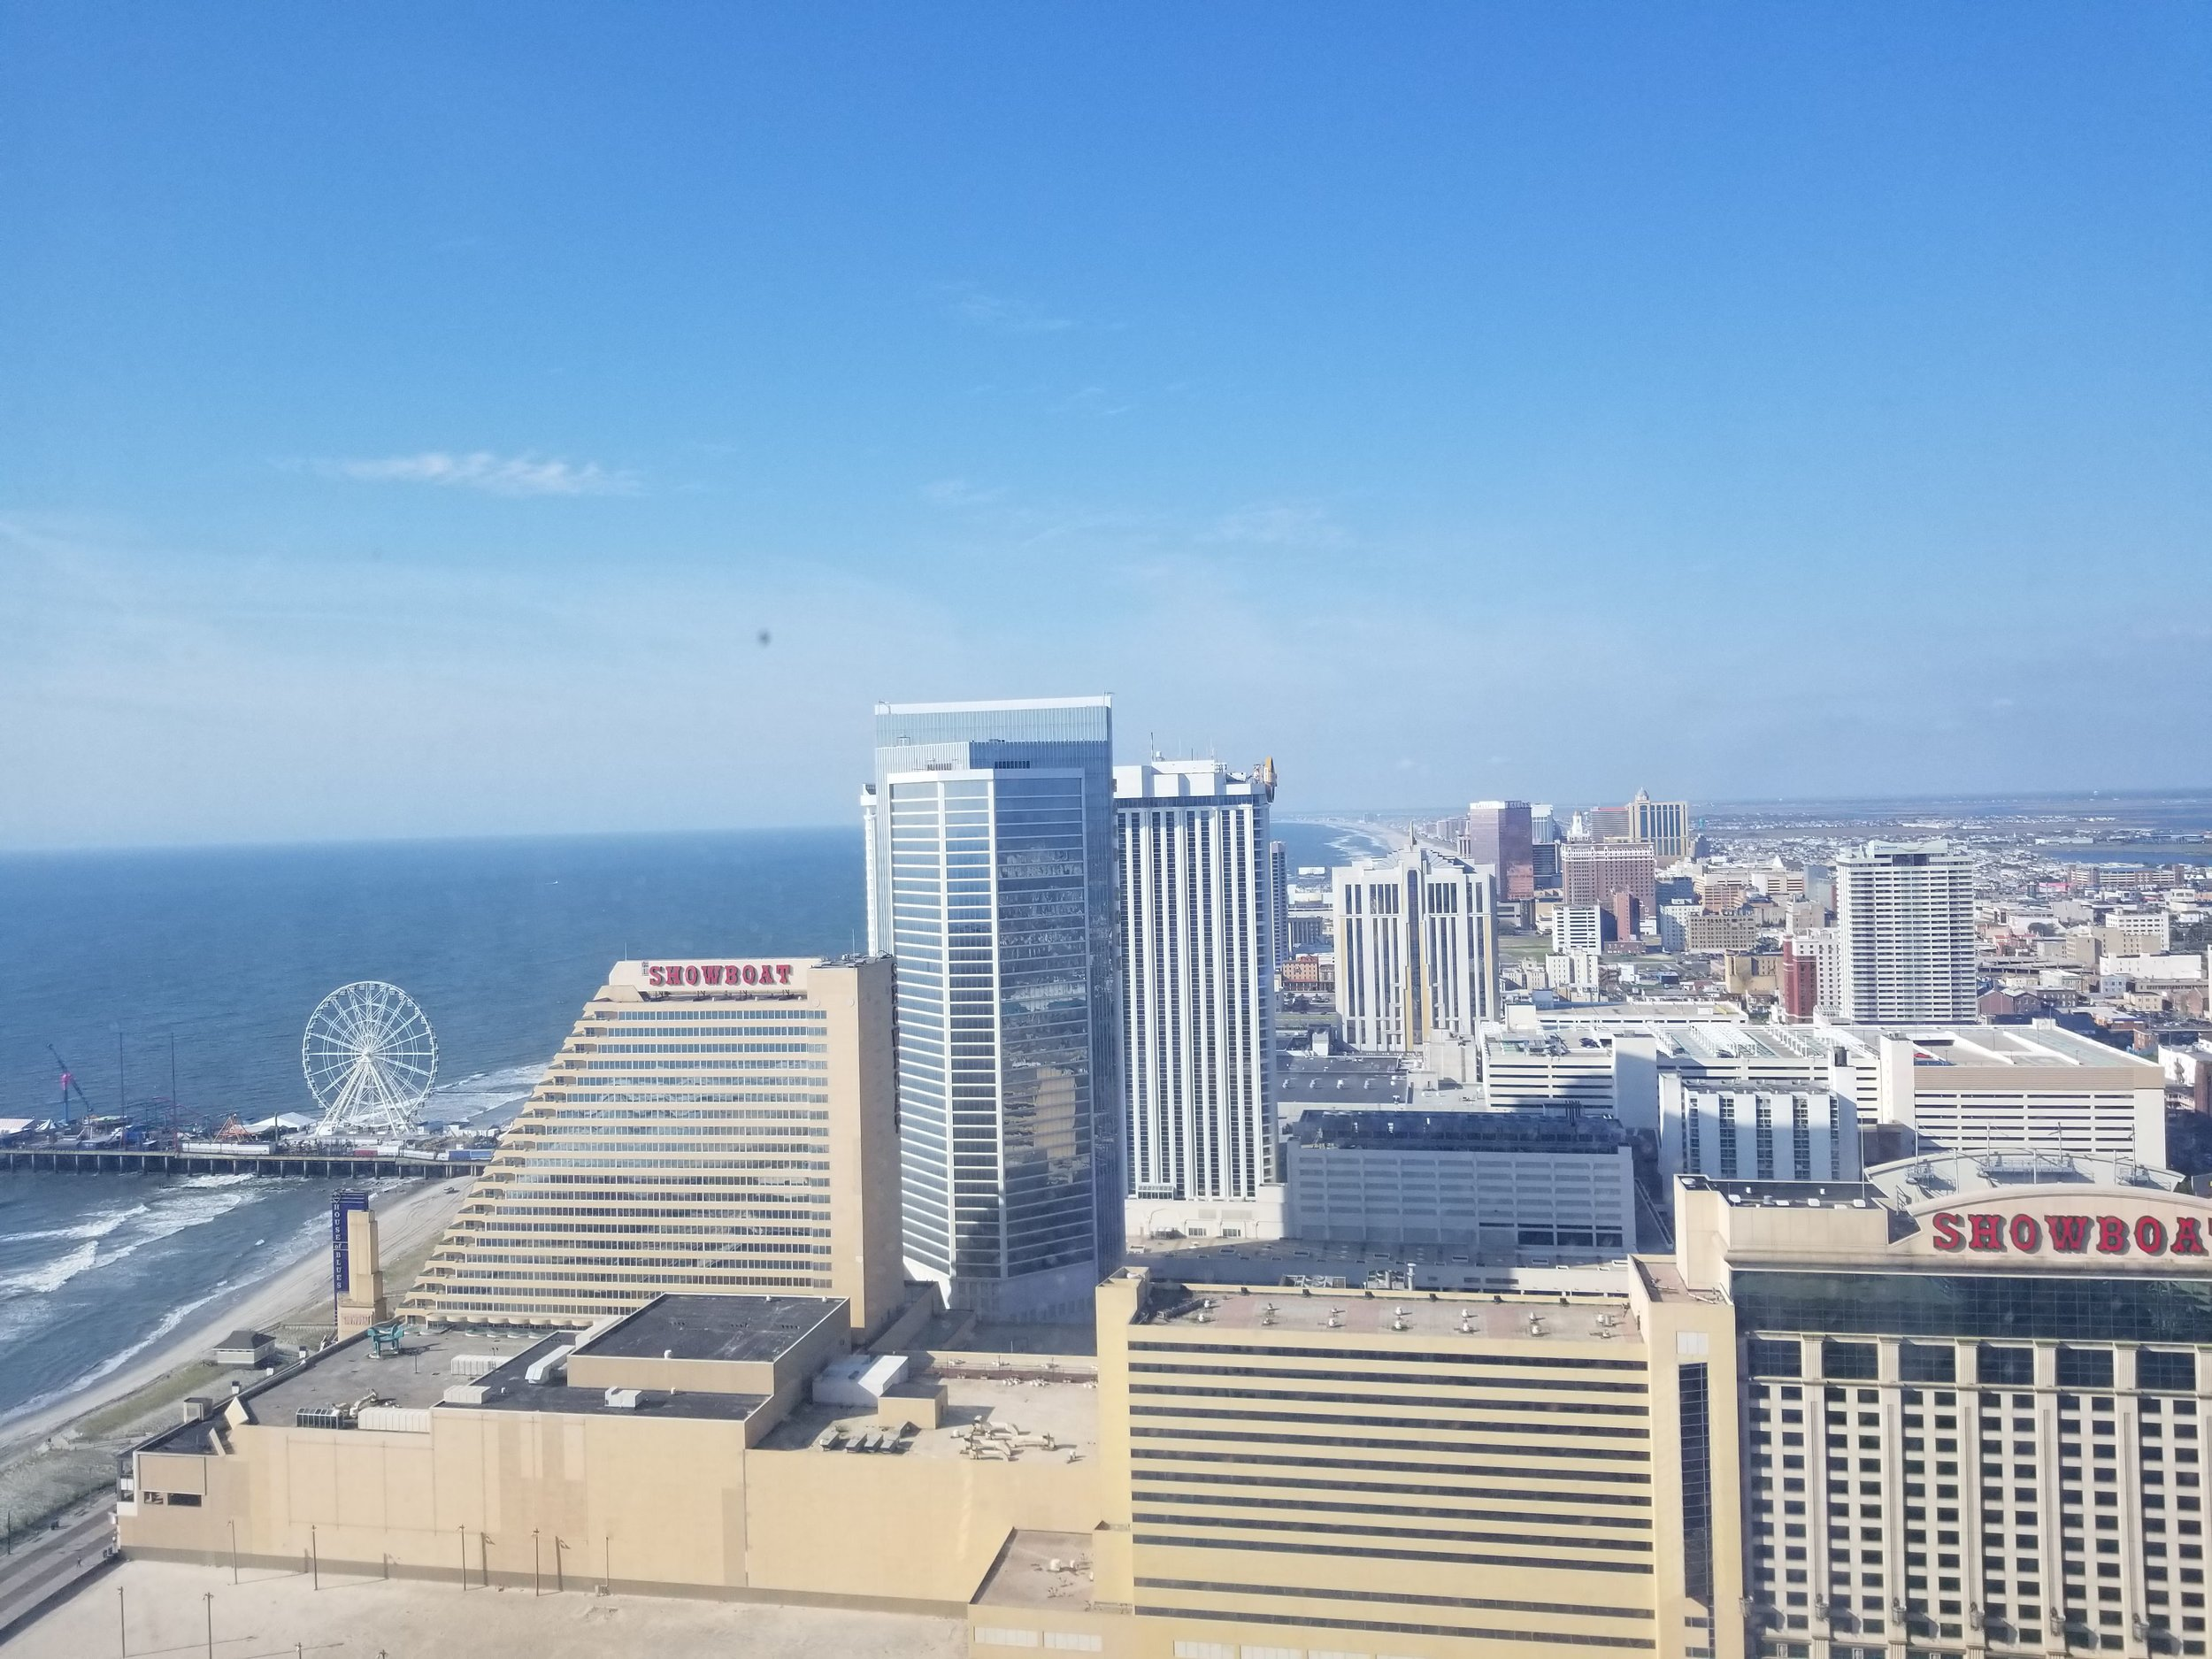 Beach and Boardwalk from Ocean Resort, Atlantic City, New Jersey